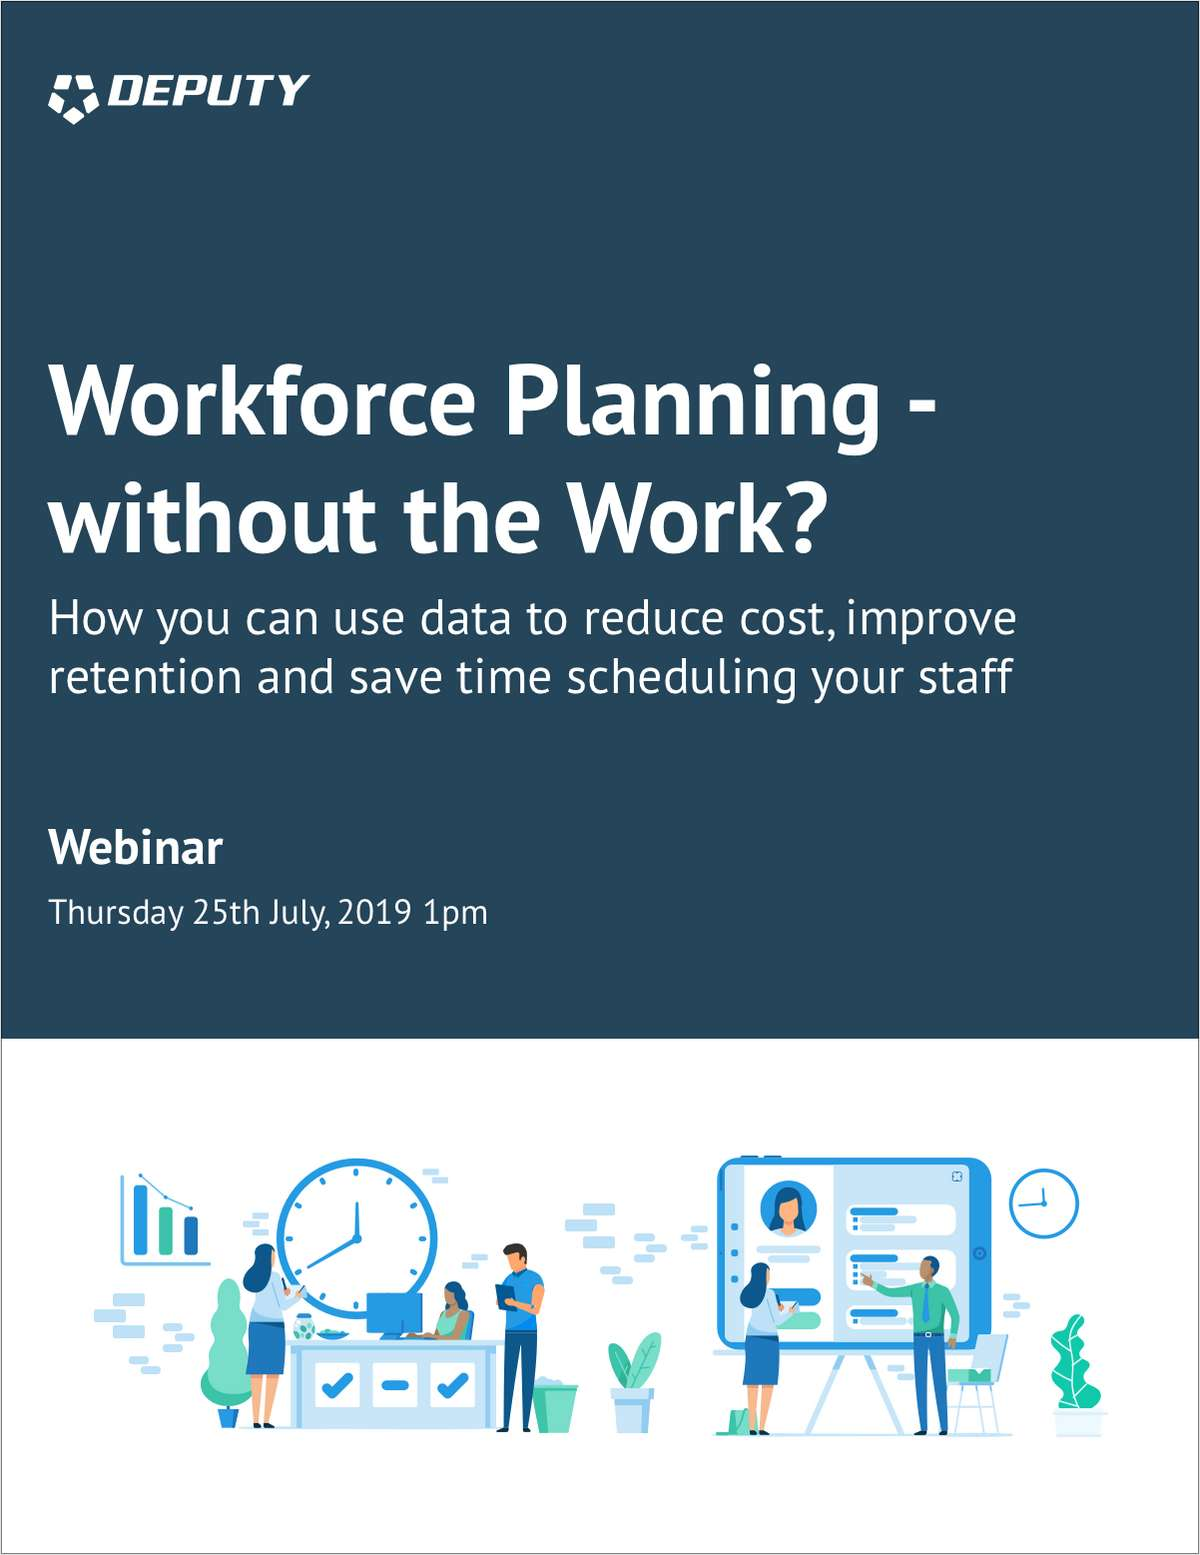 Workforce Planning - Without the Work?